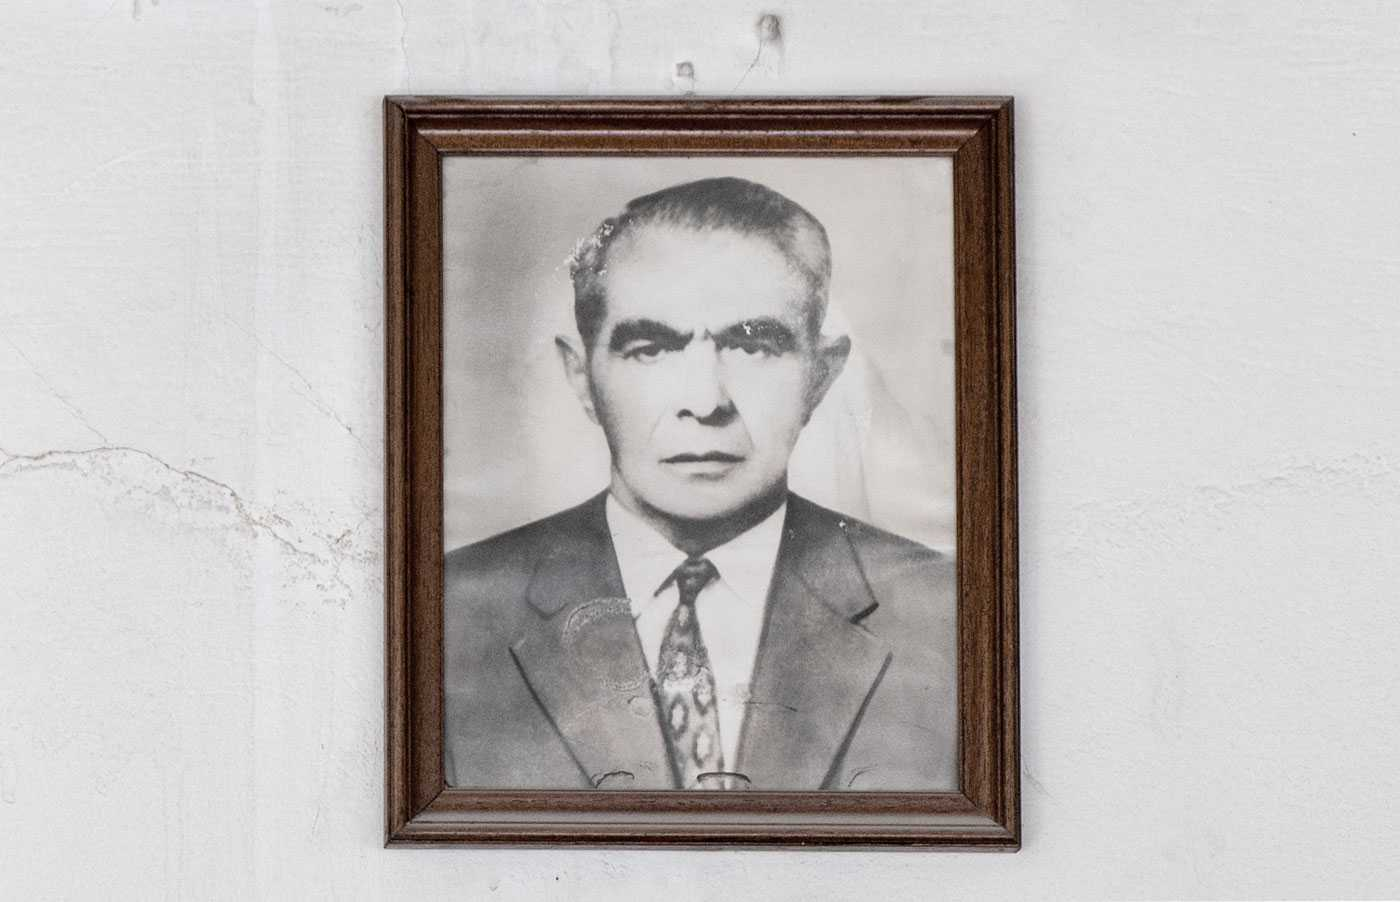 Portrait of the founder of K. Raikos S.A., Konstantinos Raikos.